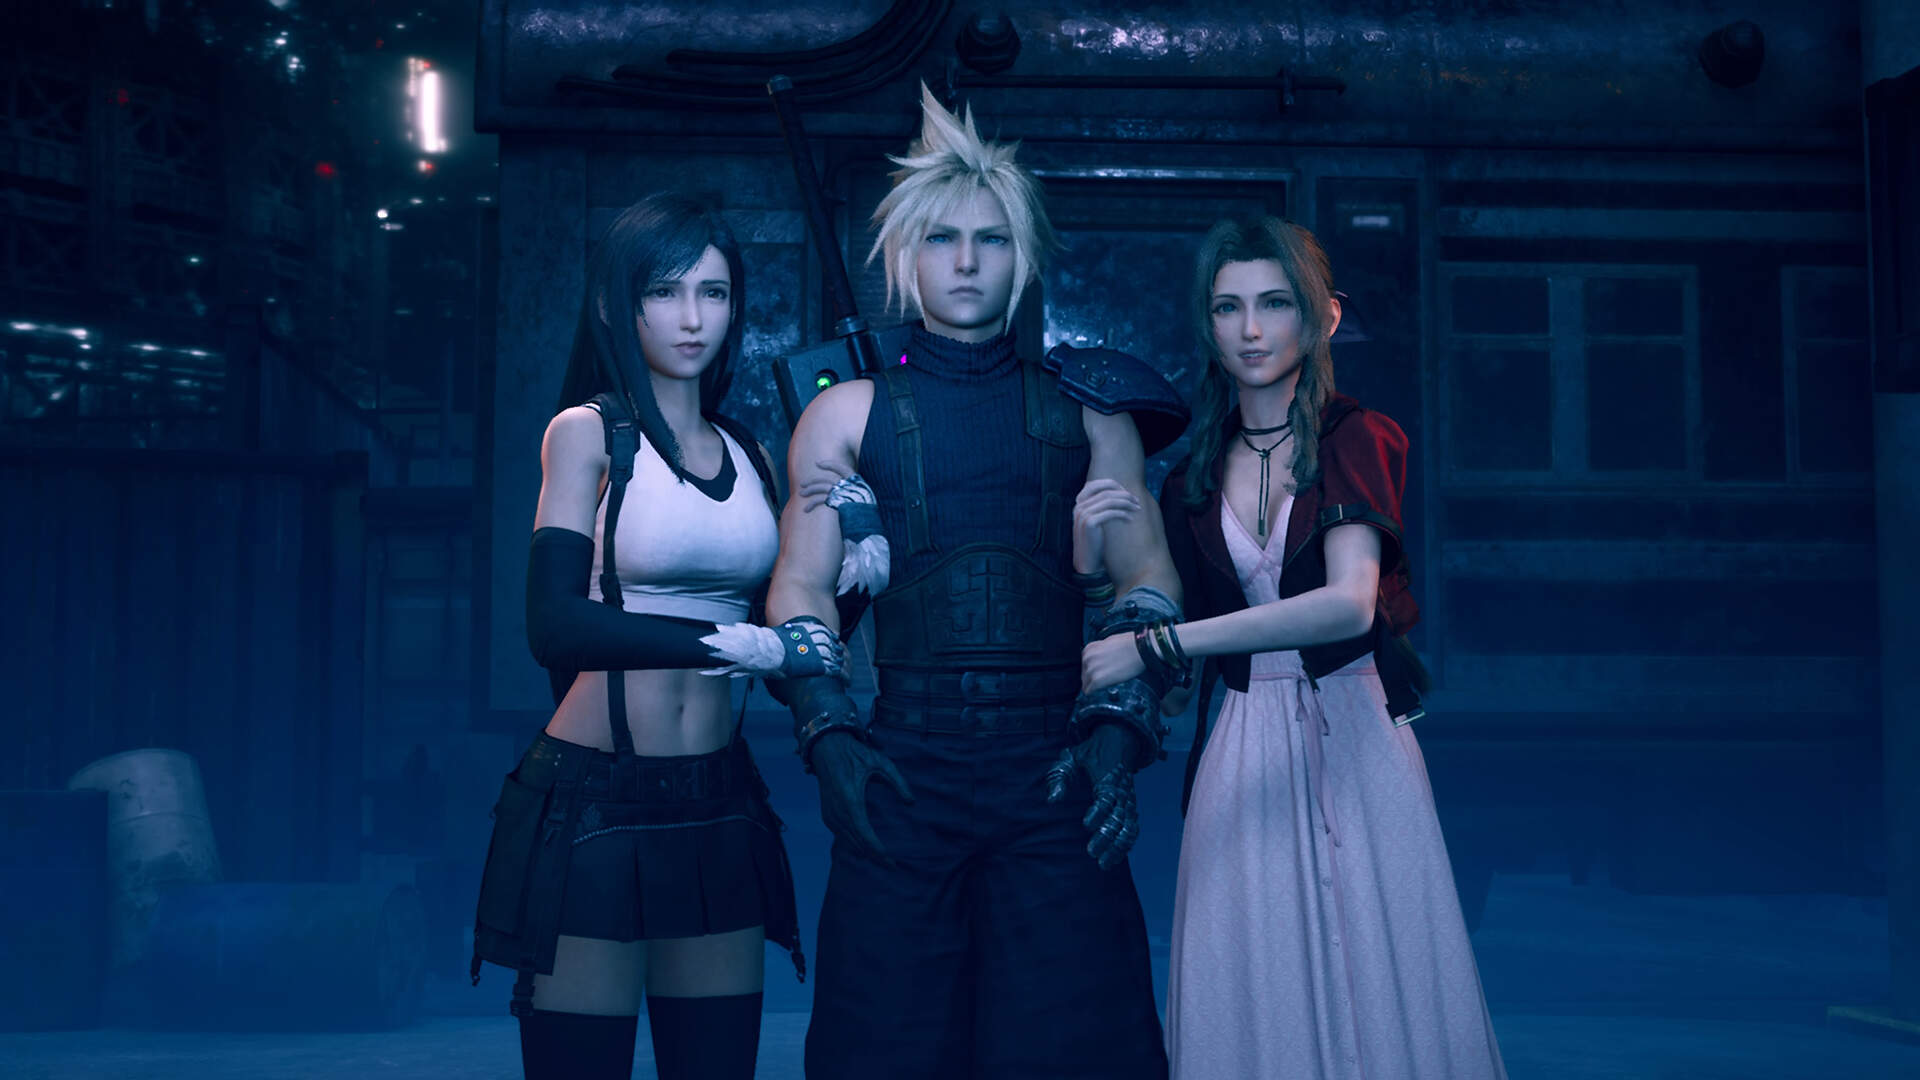 I Can't Believe Final Fantasy 7 Remake Is Converting Me to Team Aerith